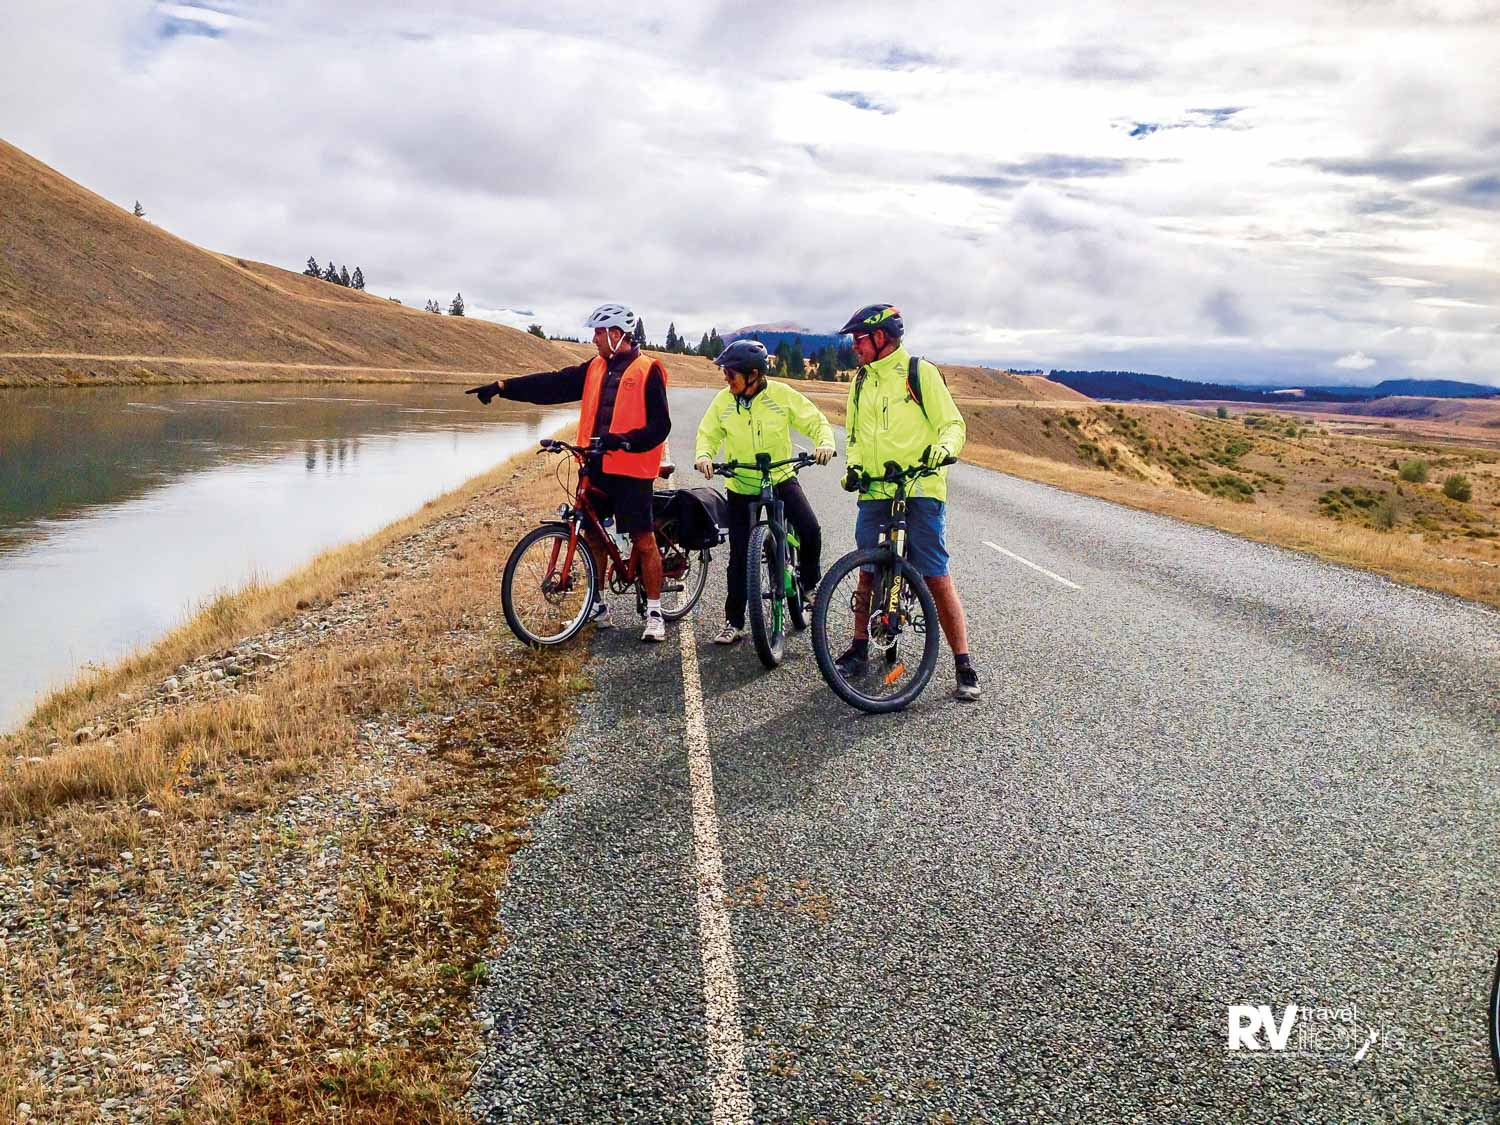 Chris and our e-biking mates Libby and Dave, spotting fish in the Tekapo–Pukaki canal